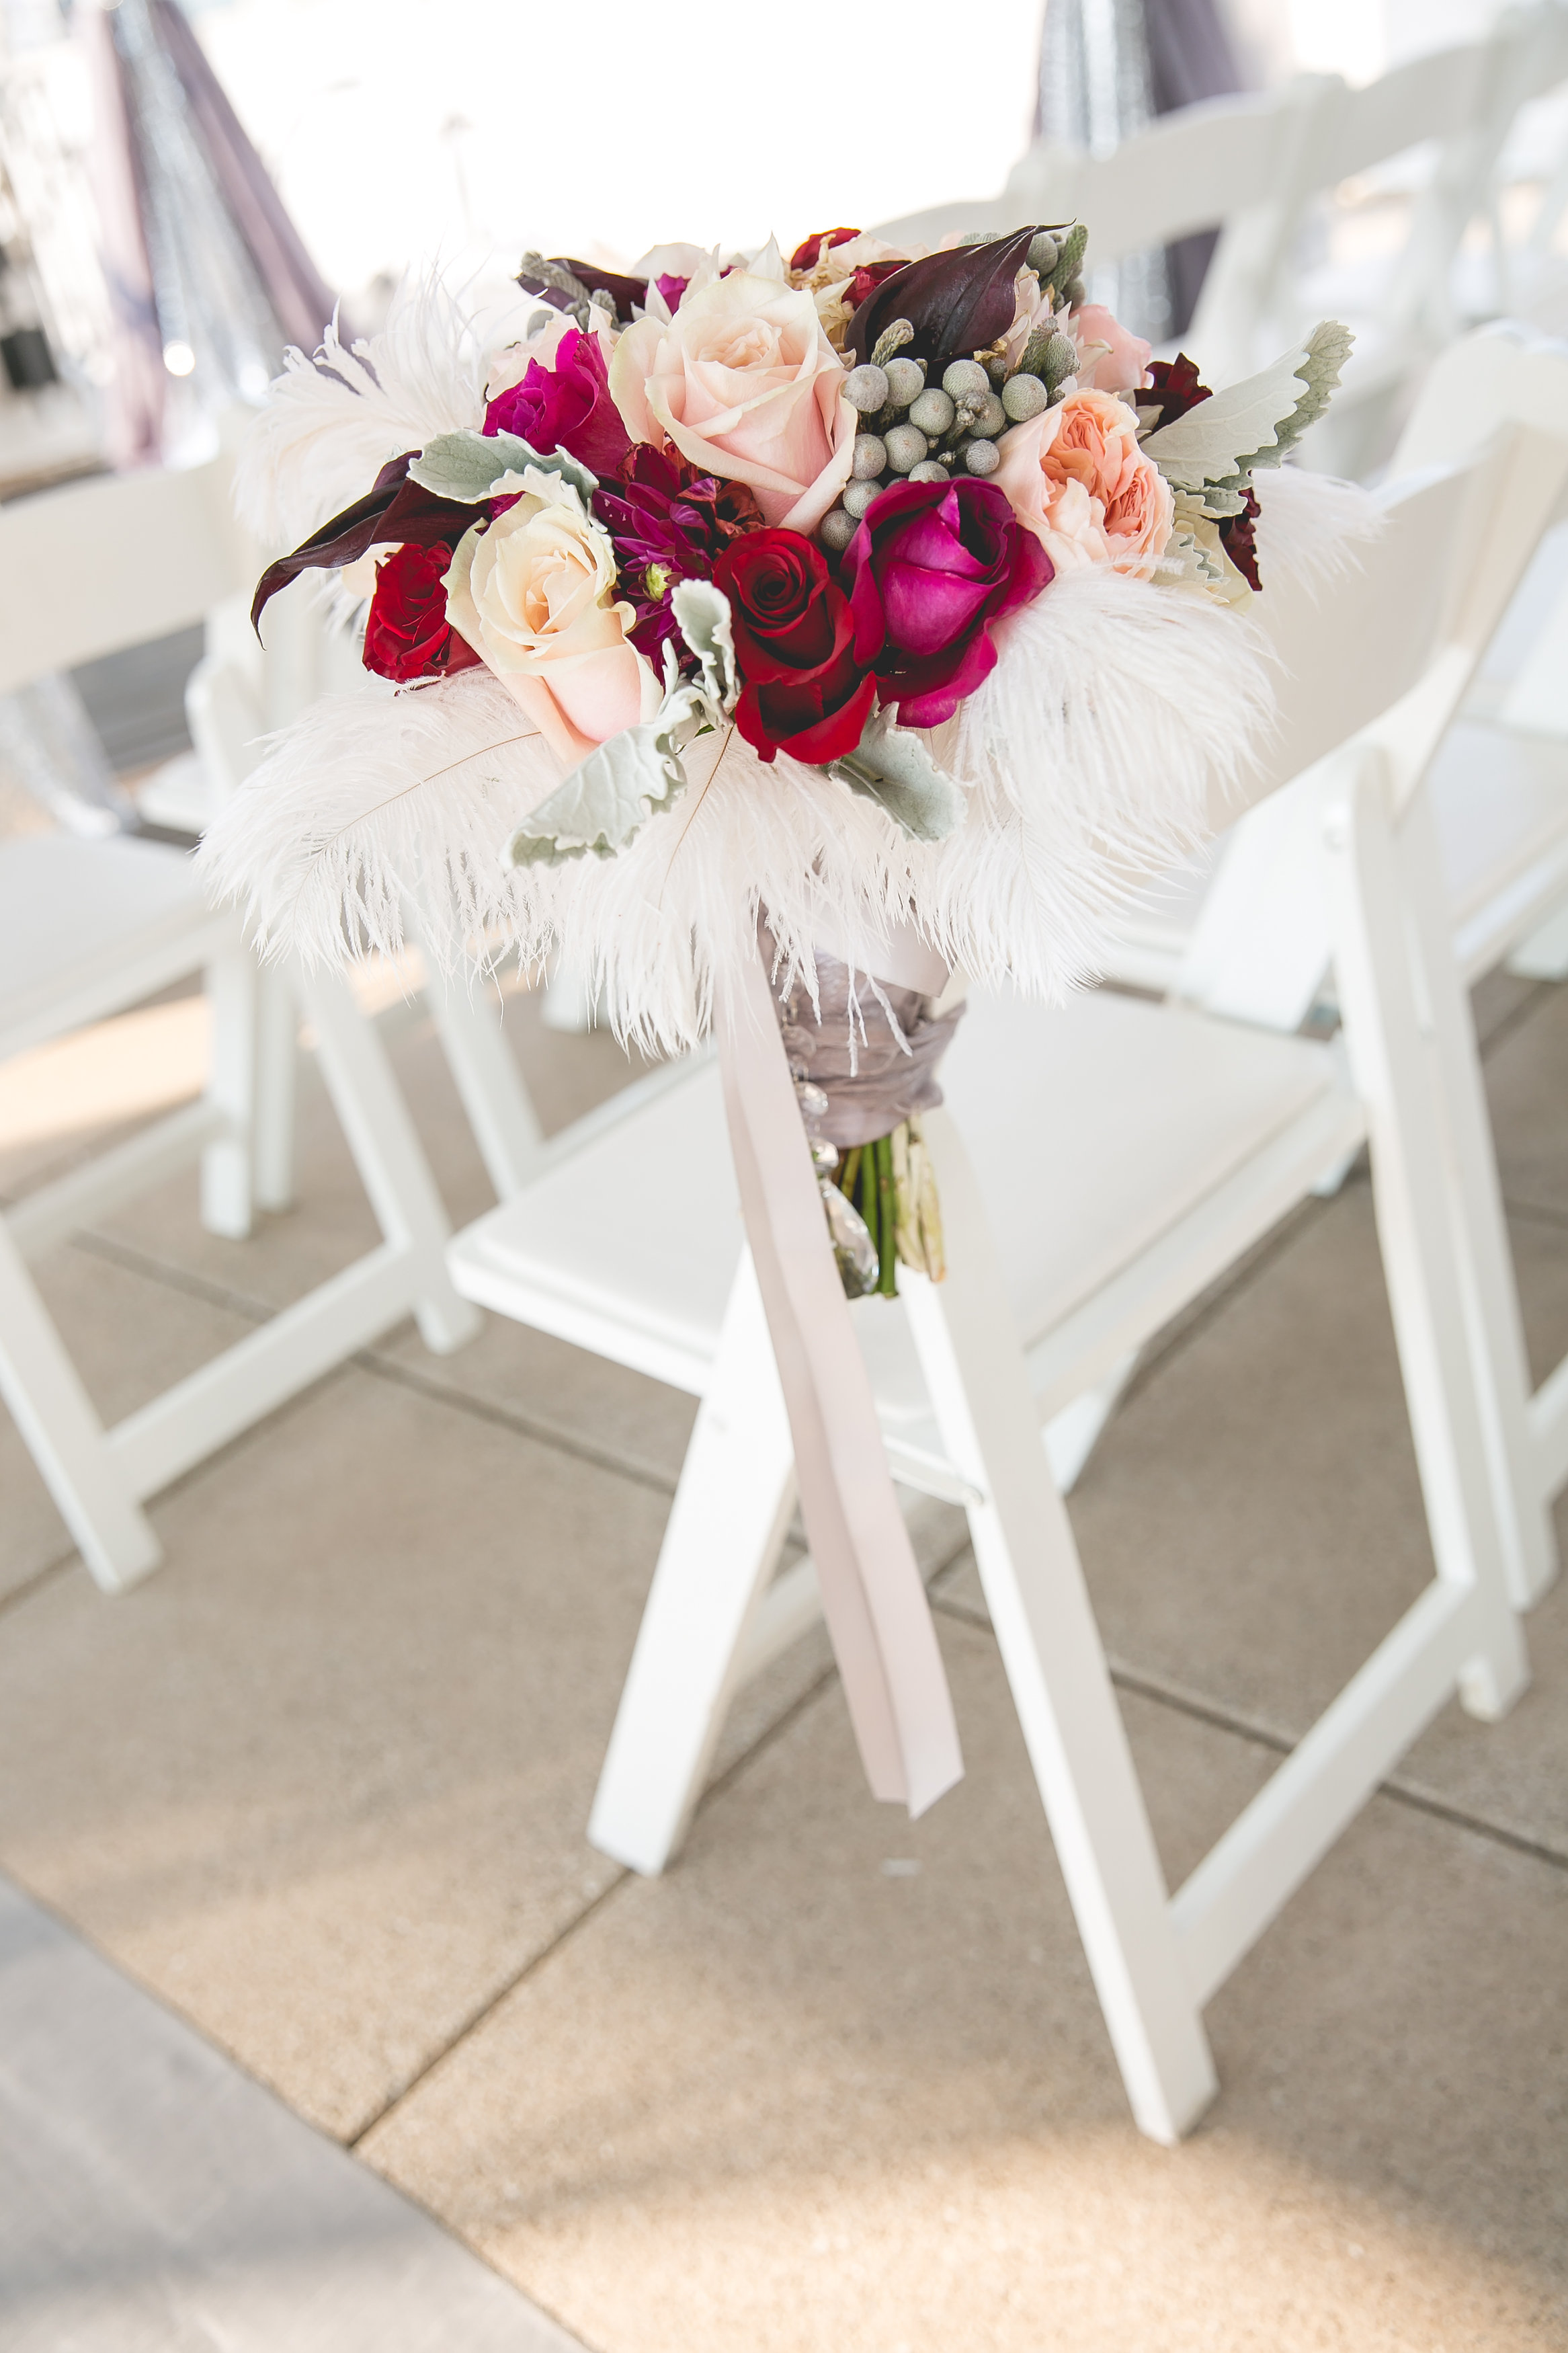 silver-sparkle-jewish-wedding-nashville-shehewe-photography-13